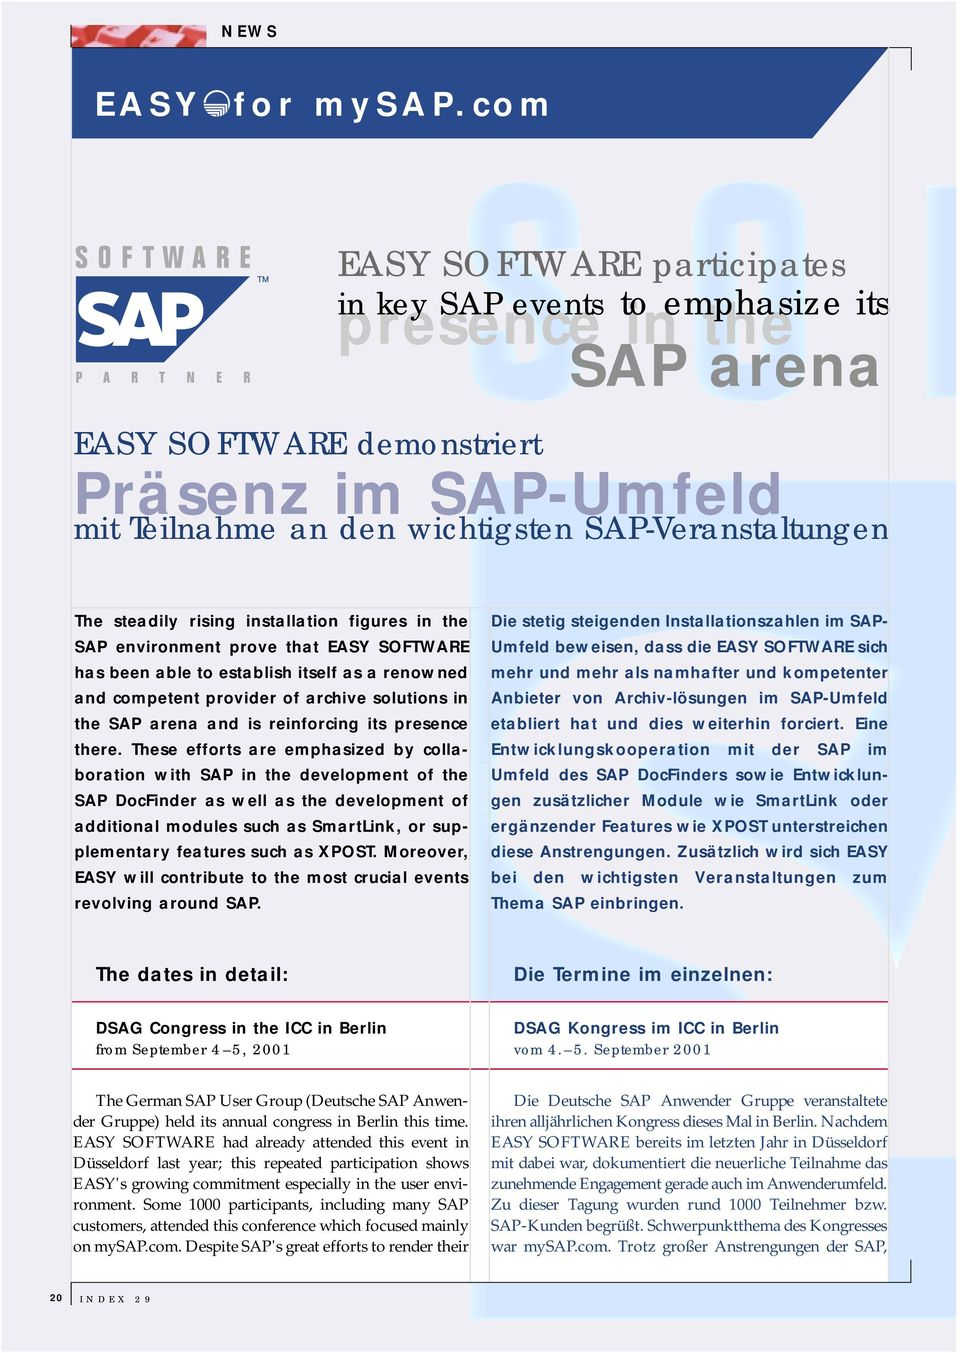 steadily rising installation figures in the SAP environment prove that EASY SOFTWARE has been able to establish itself as a renowned and competent provider of archive solutions in the SAP arena and